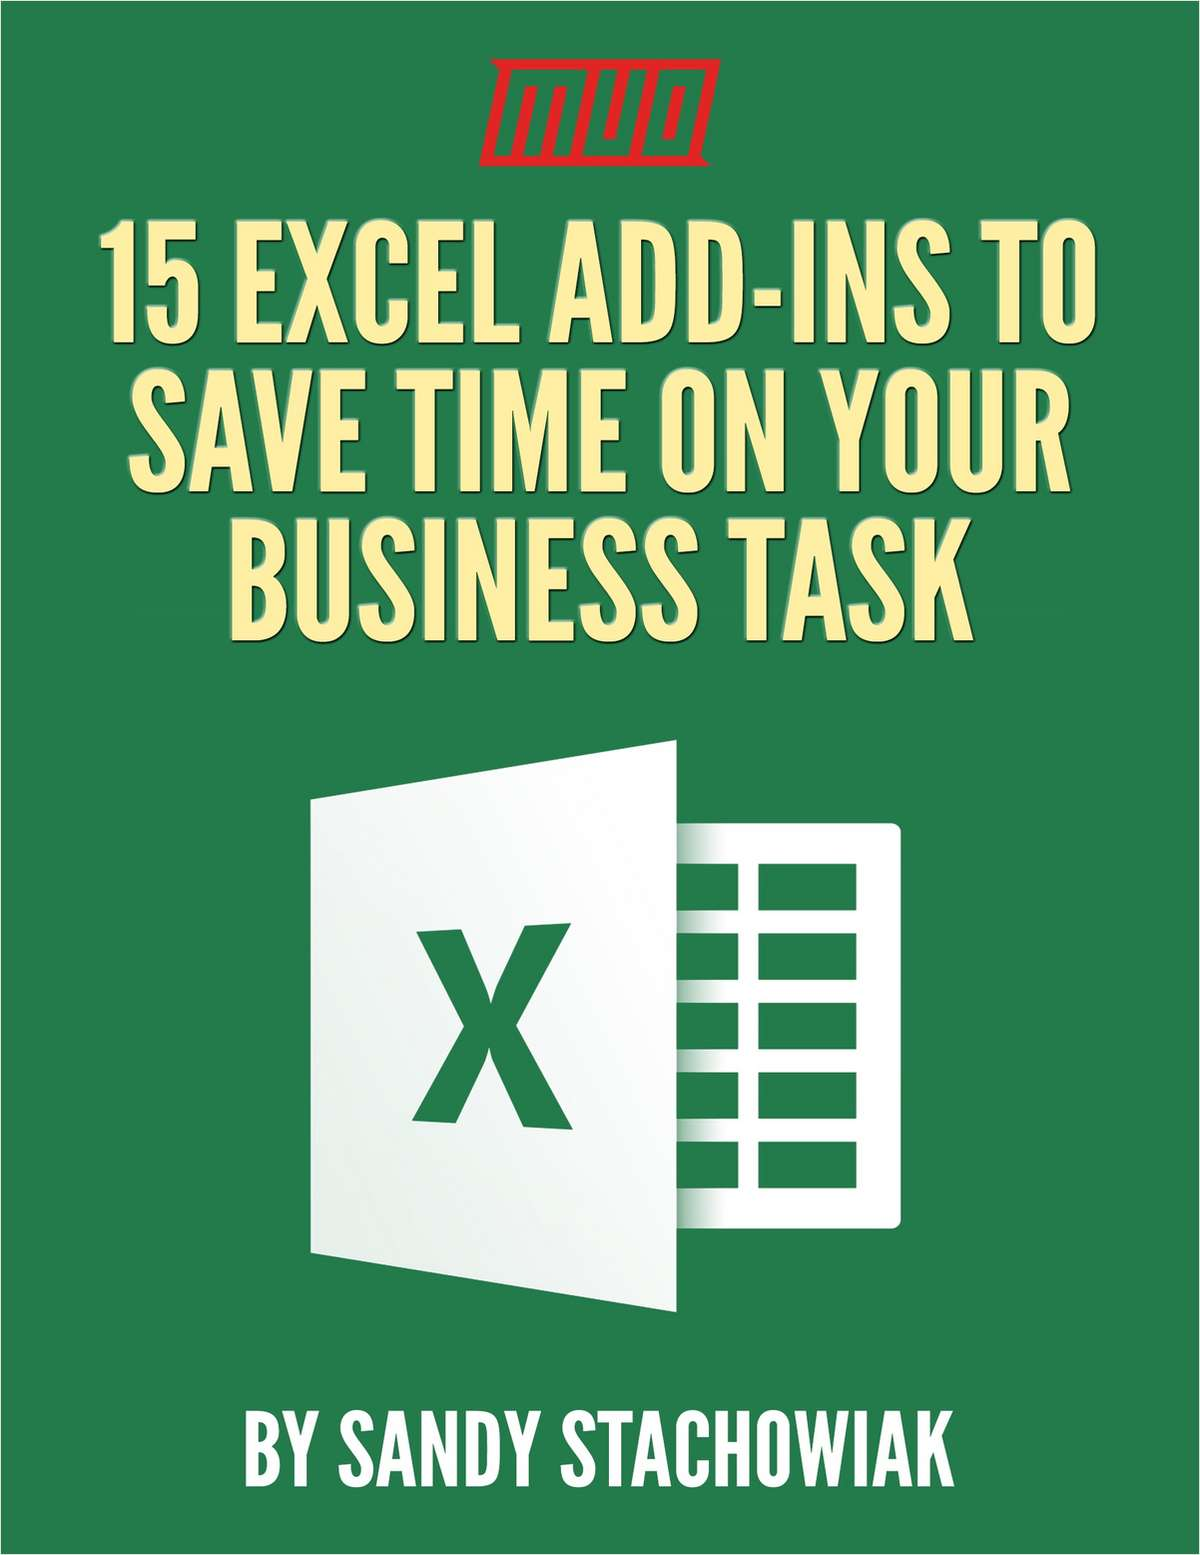 15 Excel Add-Ins to Save Time on Your Business Tasks